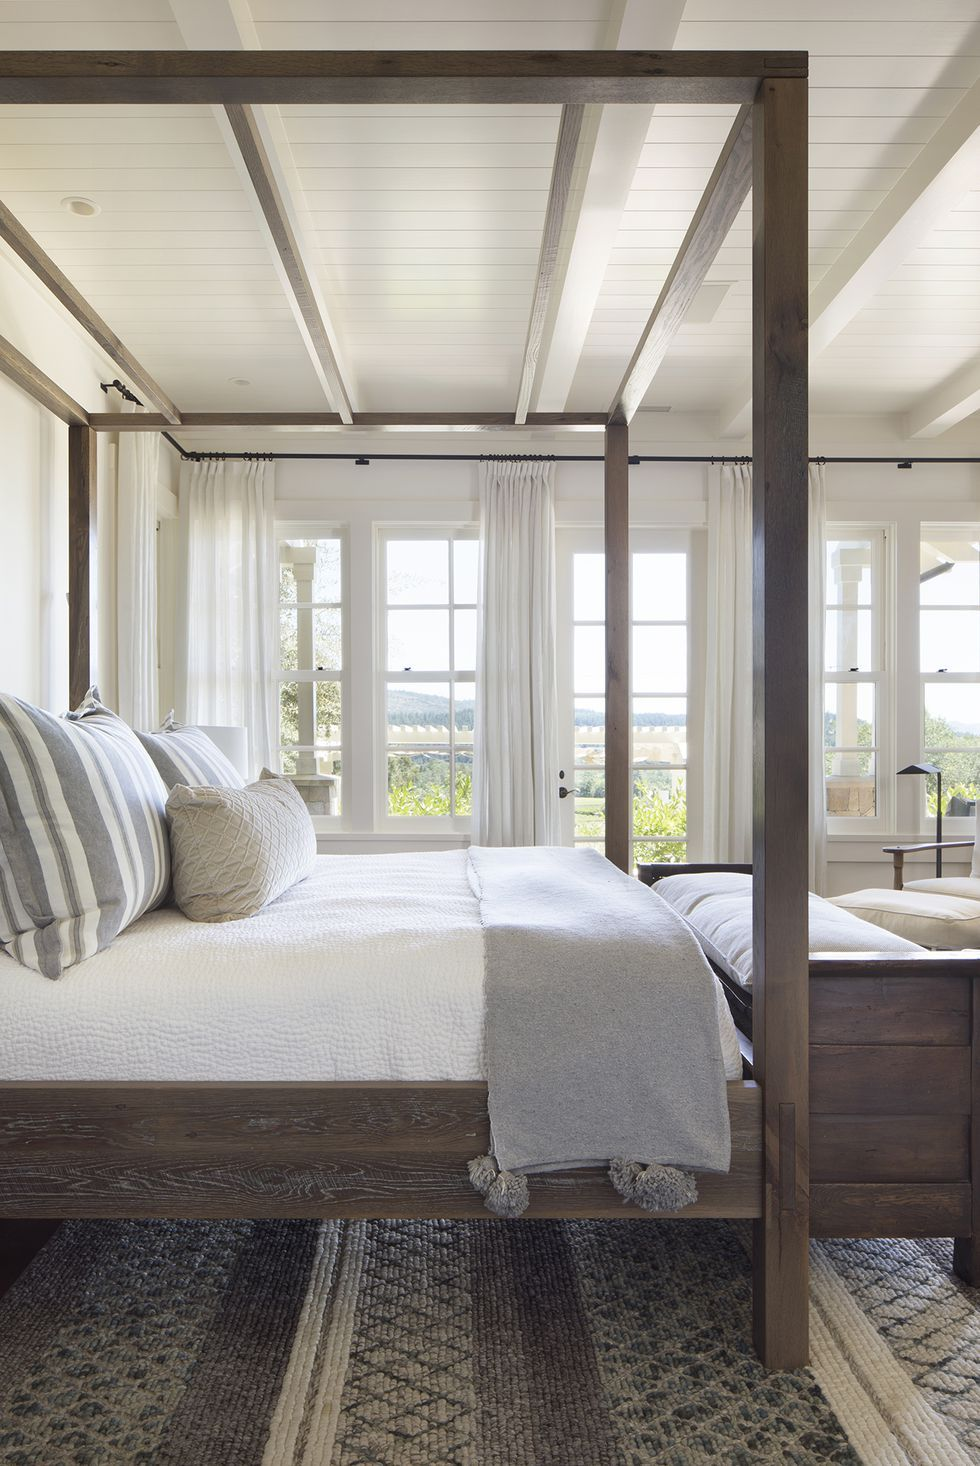 Upgrade Your Bedroom With A Captivating Wood Ceiling Modern Bedroom Design Wood Bedroom Design Bedroom Design Napa chictransitional master bedroom